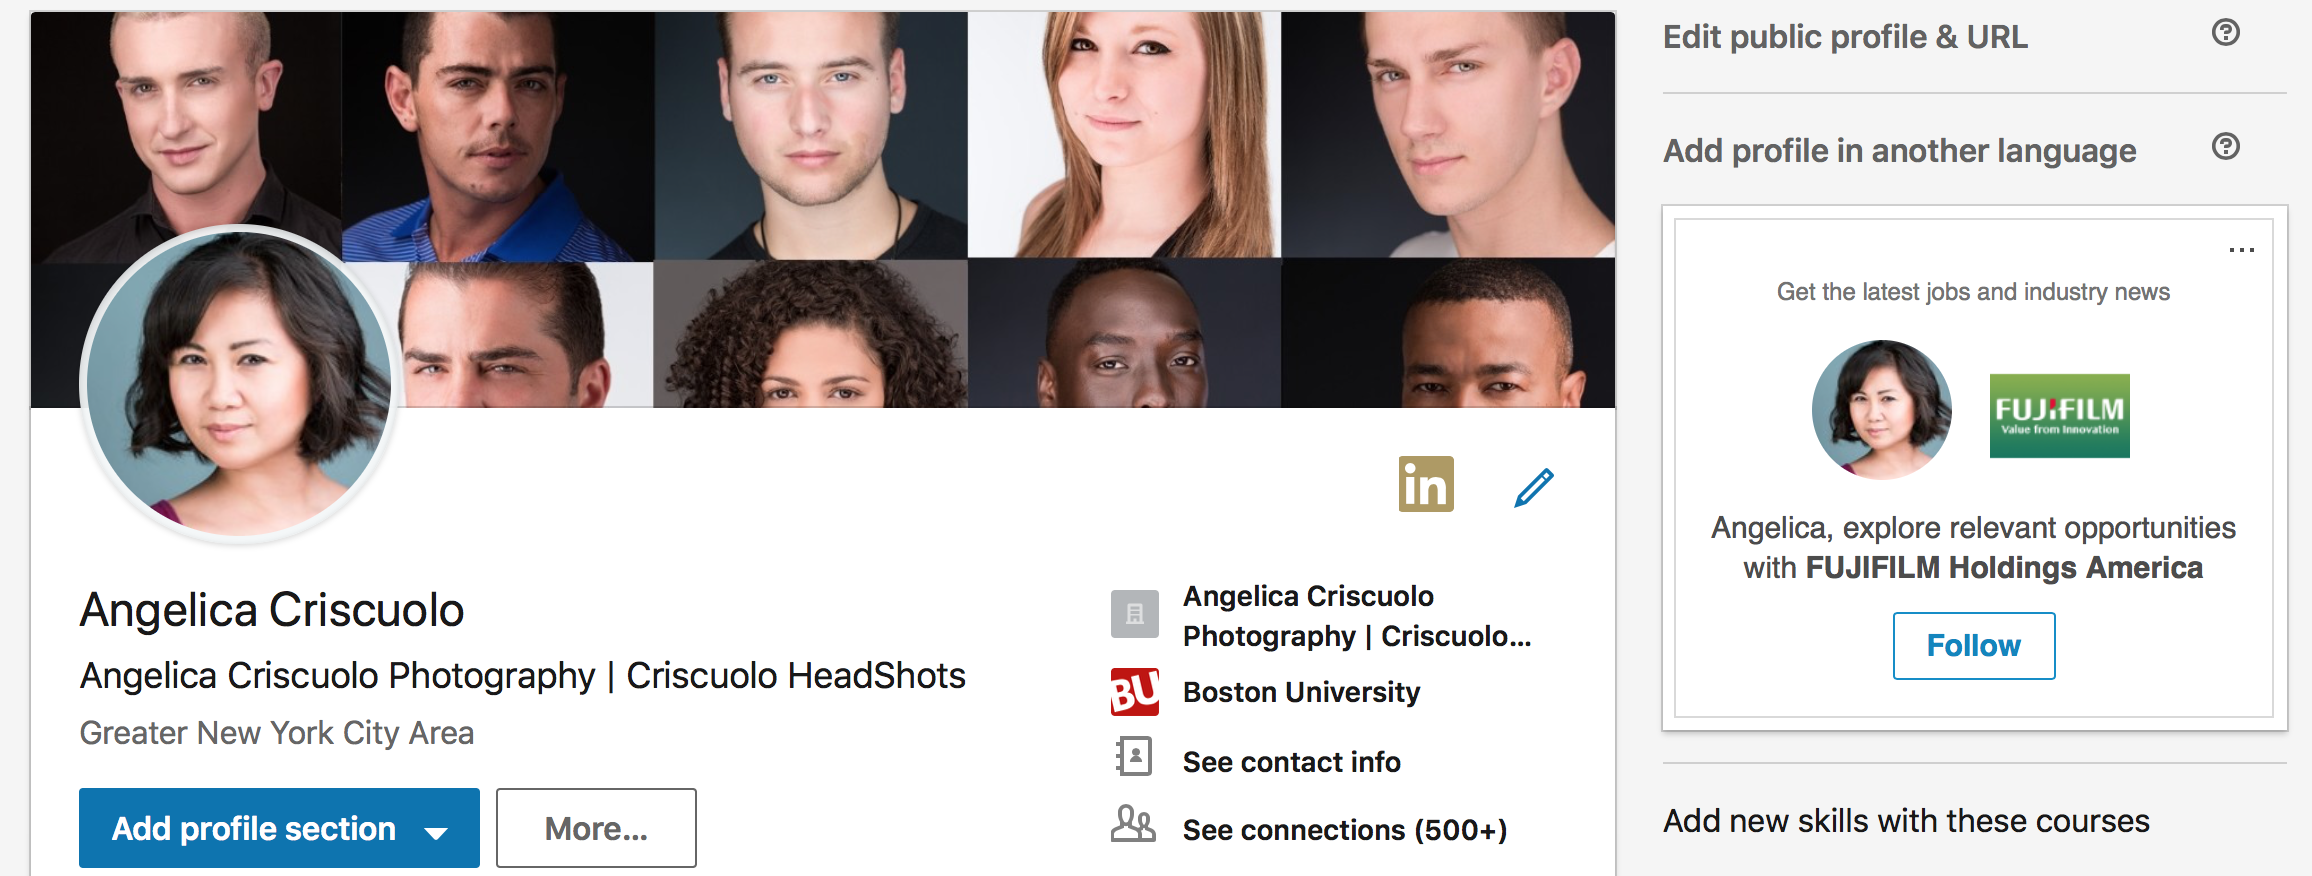 NYC-Headshots-for-linkedin-profile.png